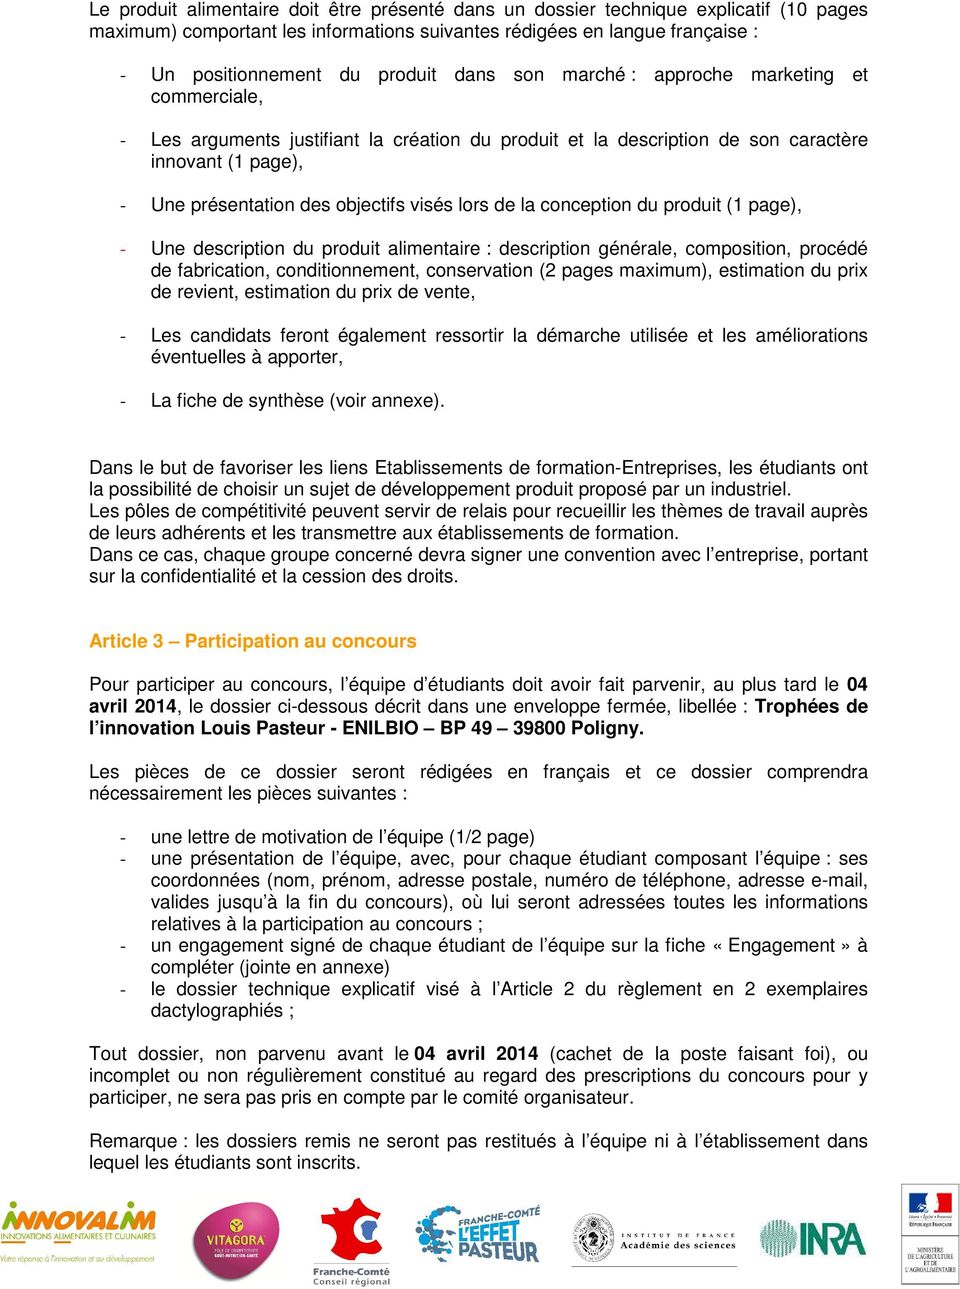 lors de la conception du produit (1 page), - Une description du produit alimentaire : description générale, composition, procédé de fabrication, conditionnement, conservation (2 pages maximum),